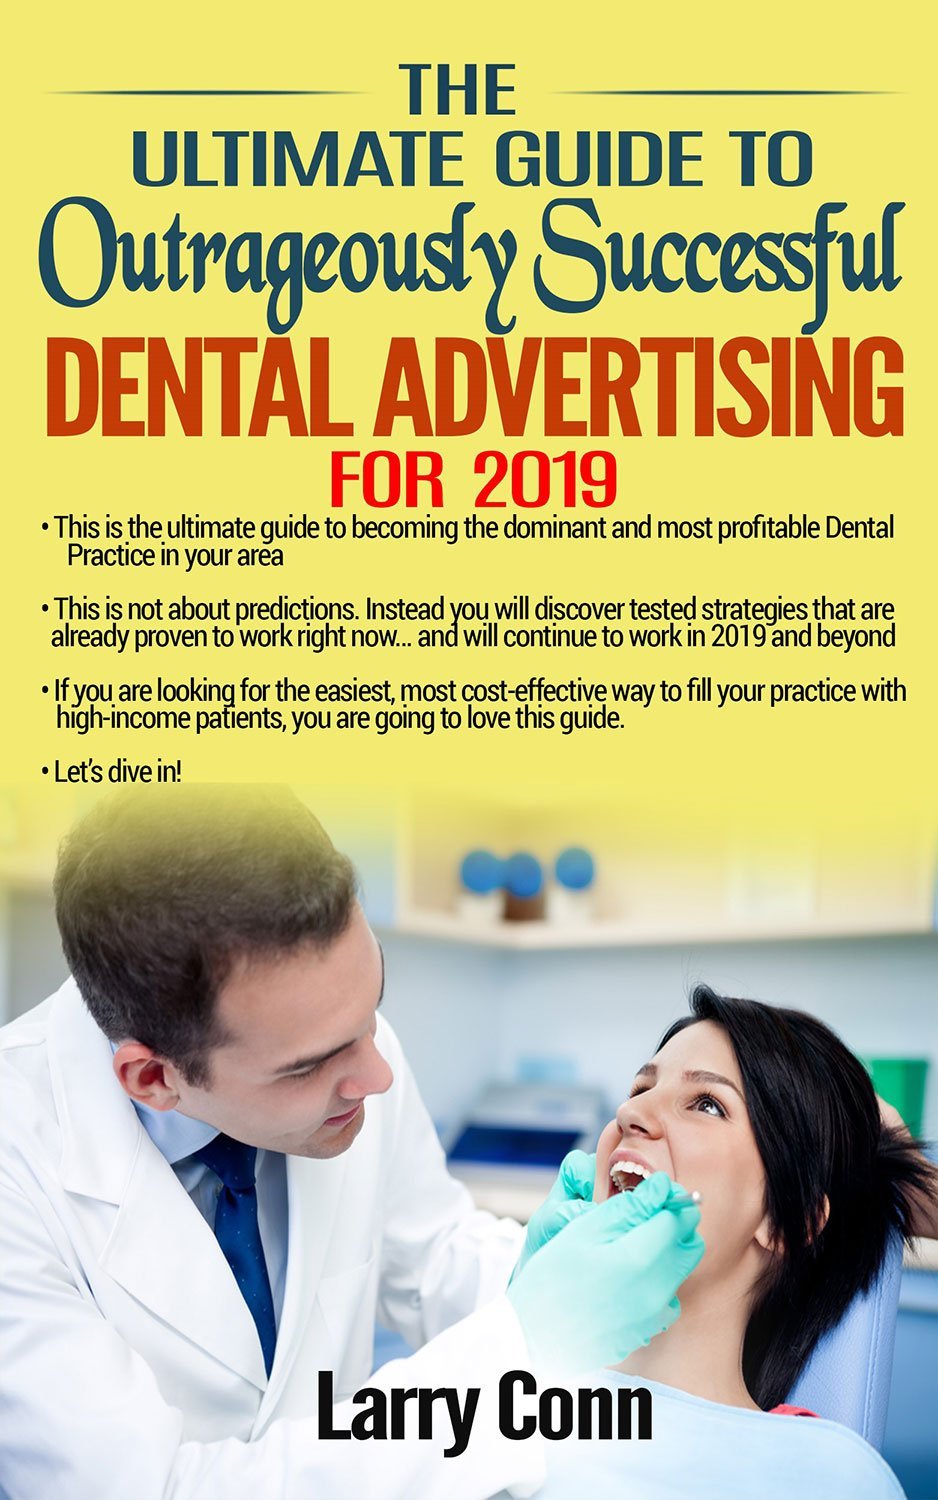 Guide to Successful Dental Advertising